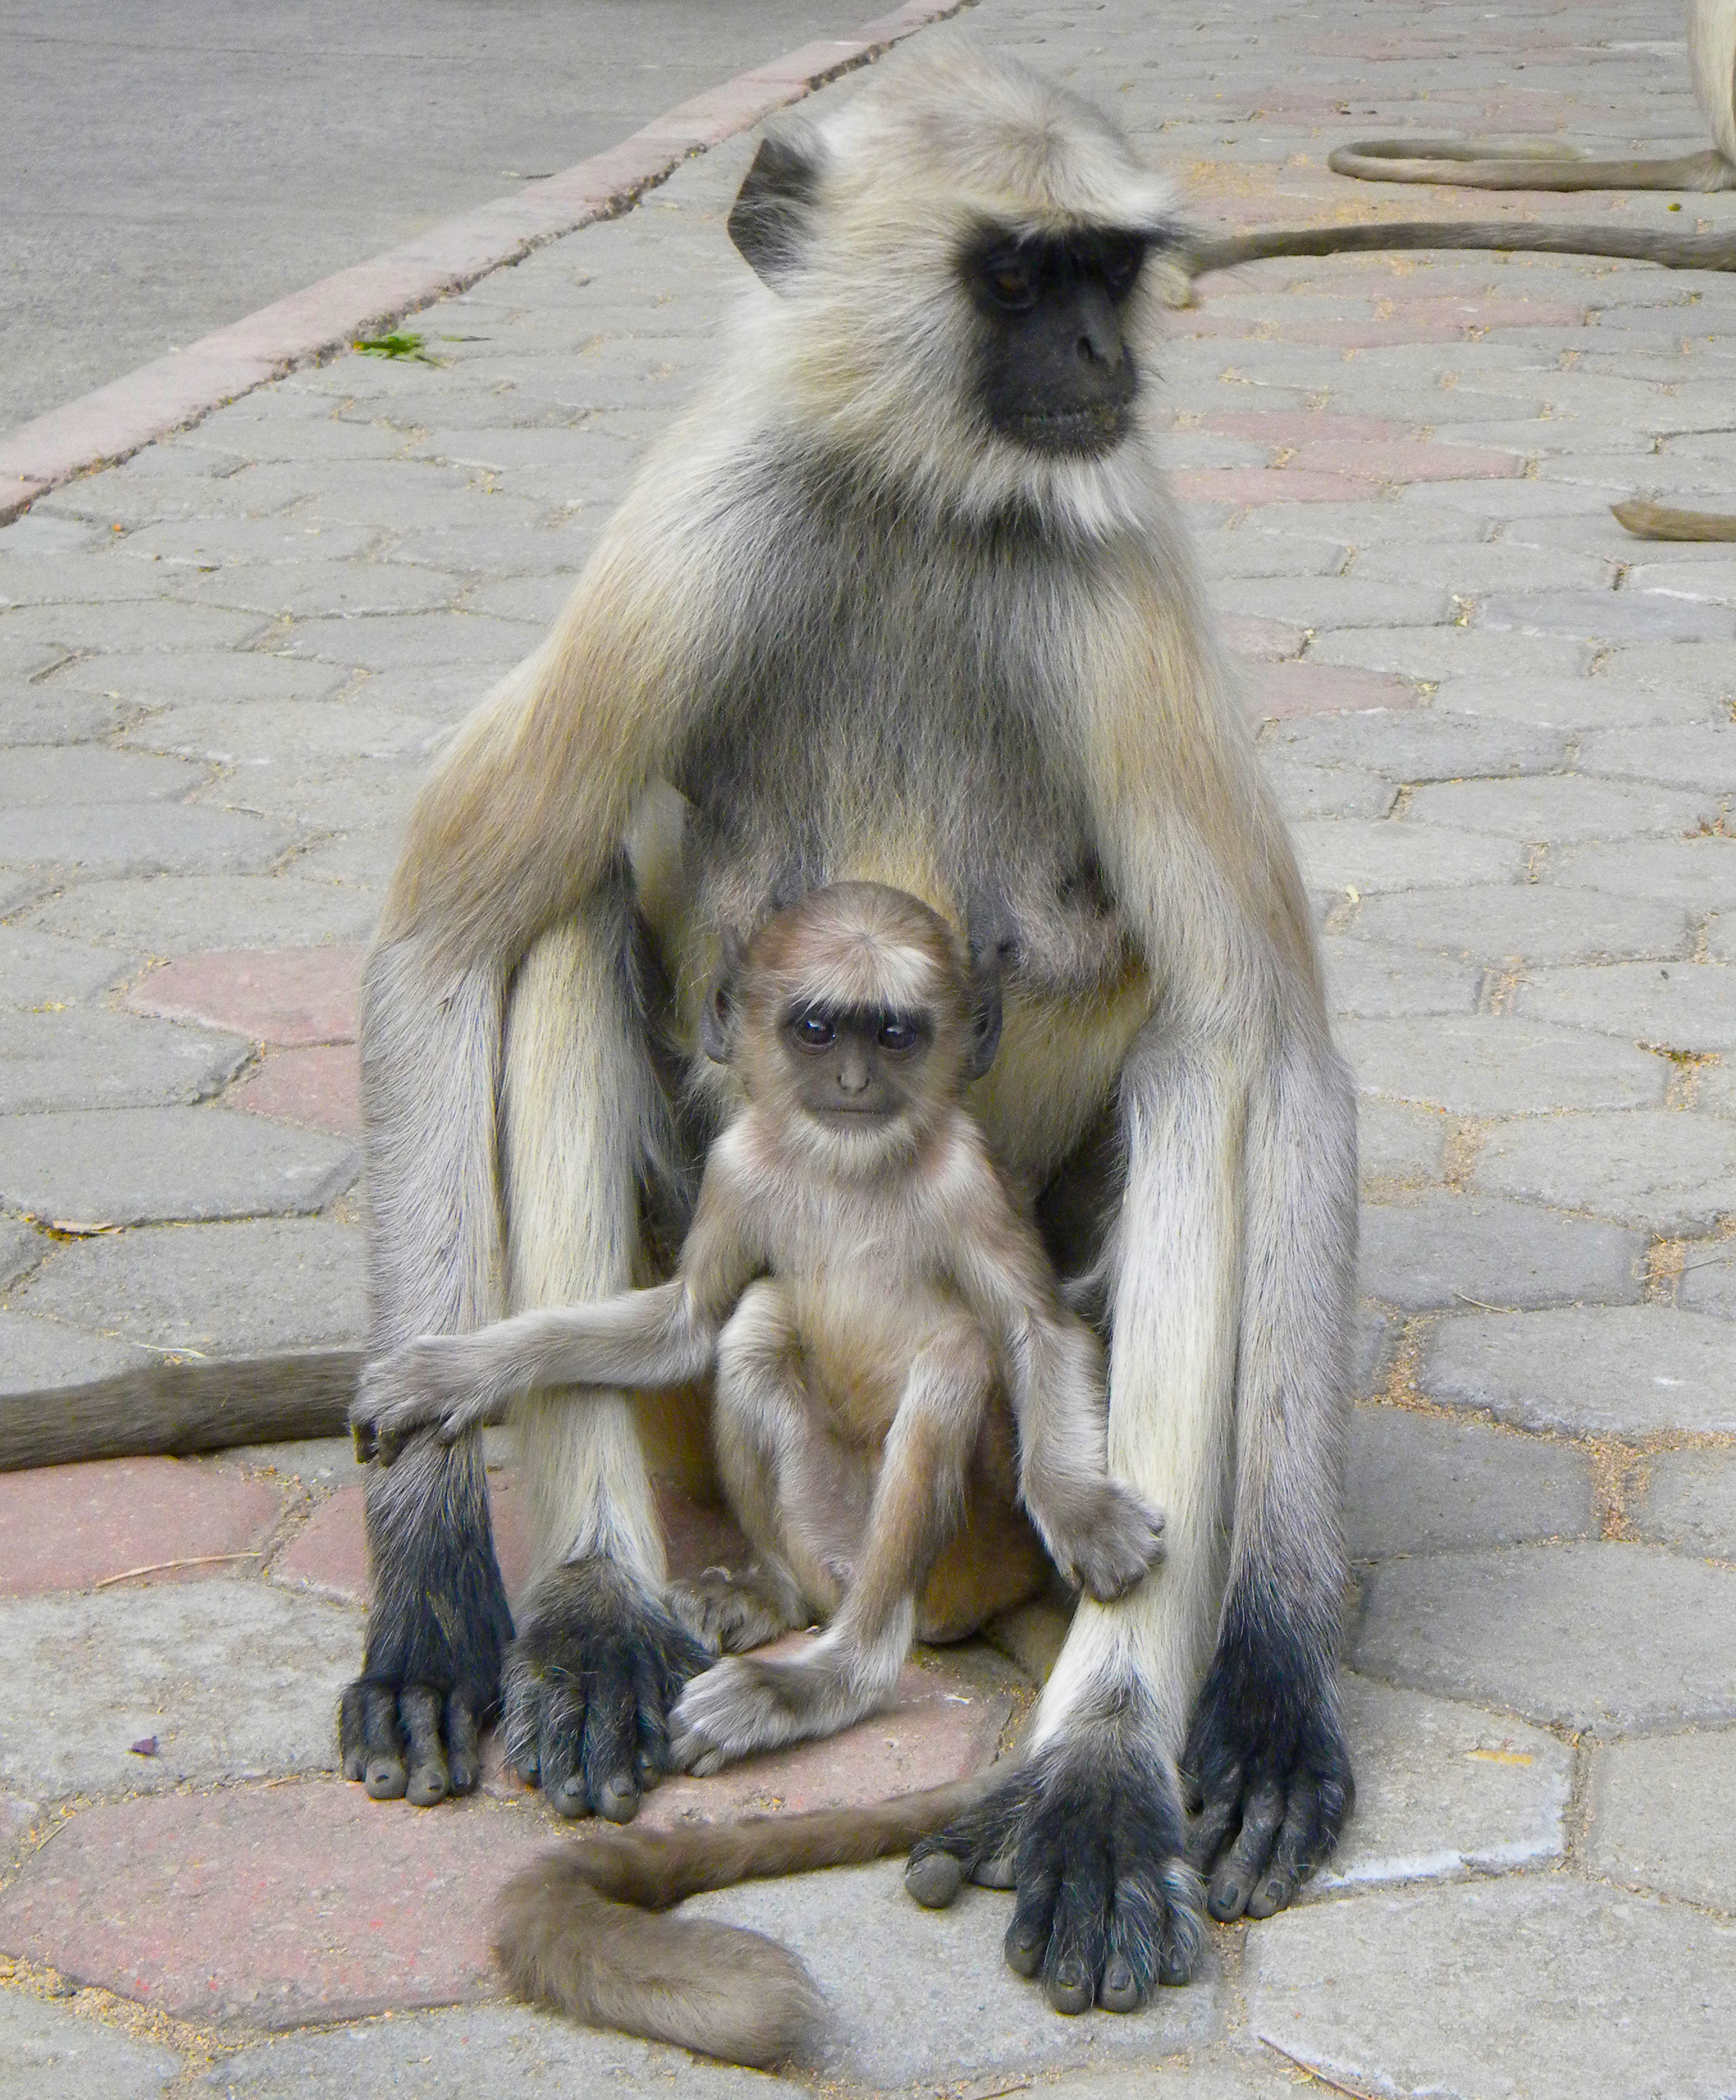 Mother and Child, India 2010